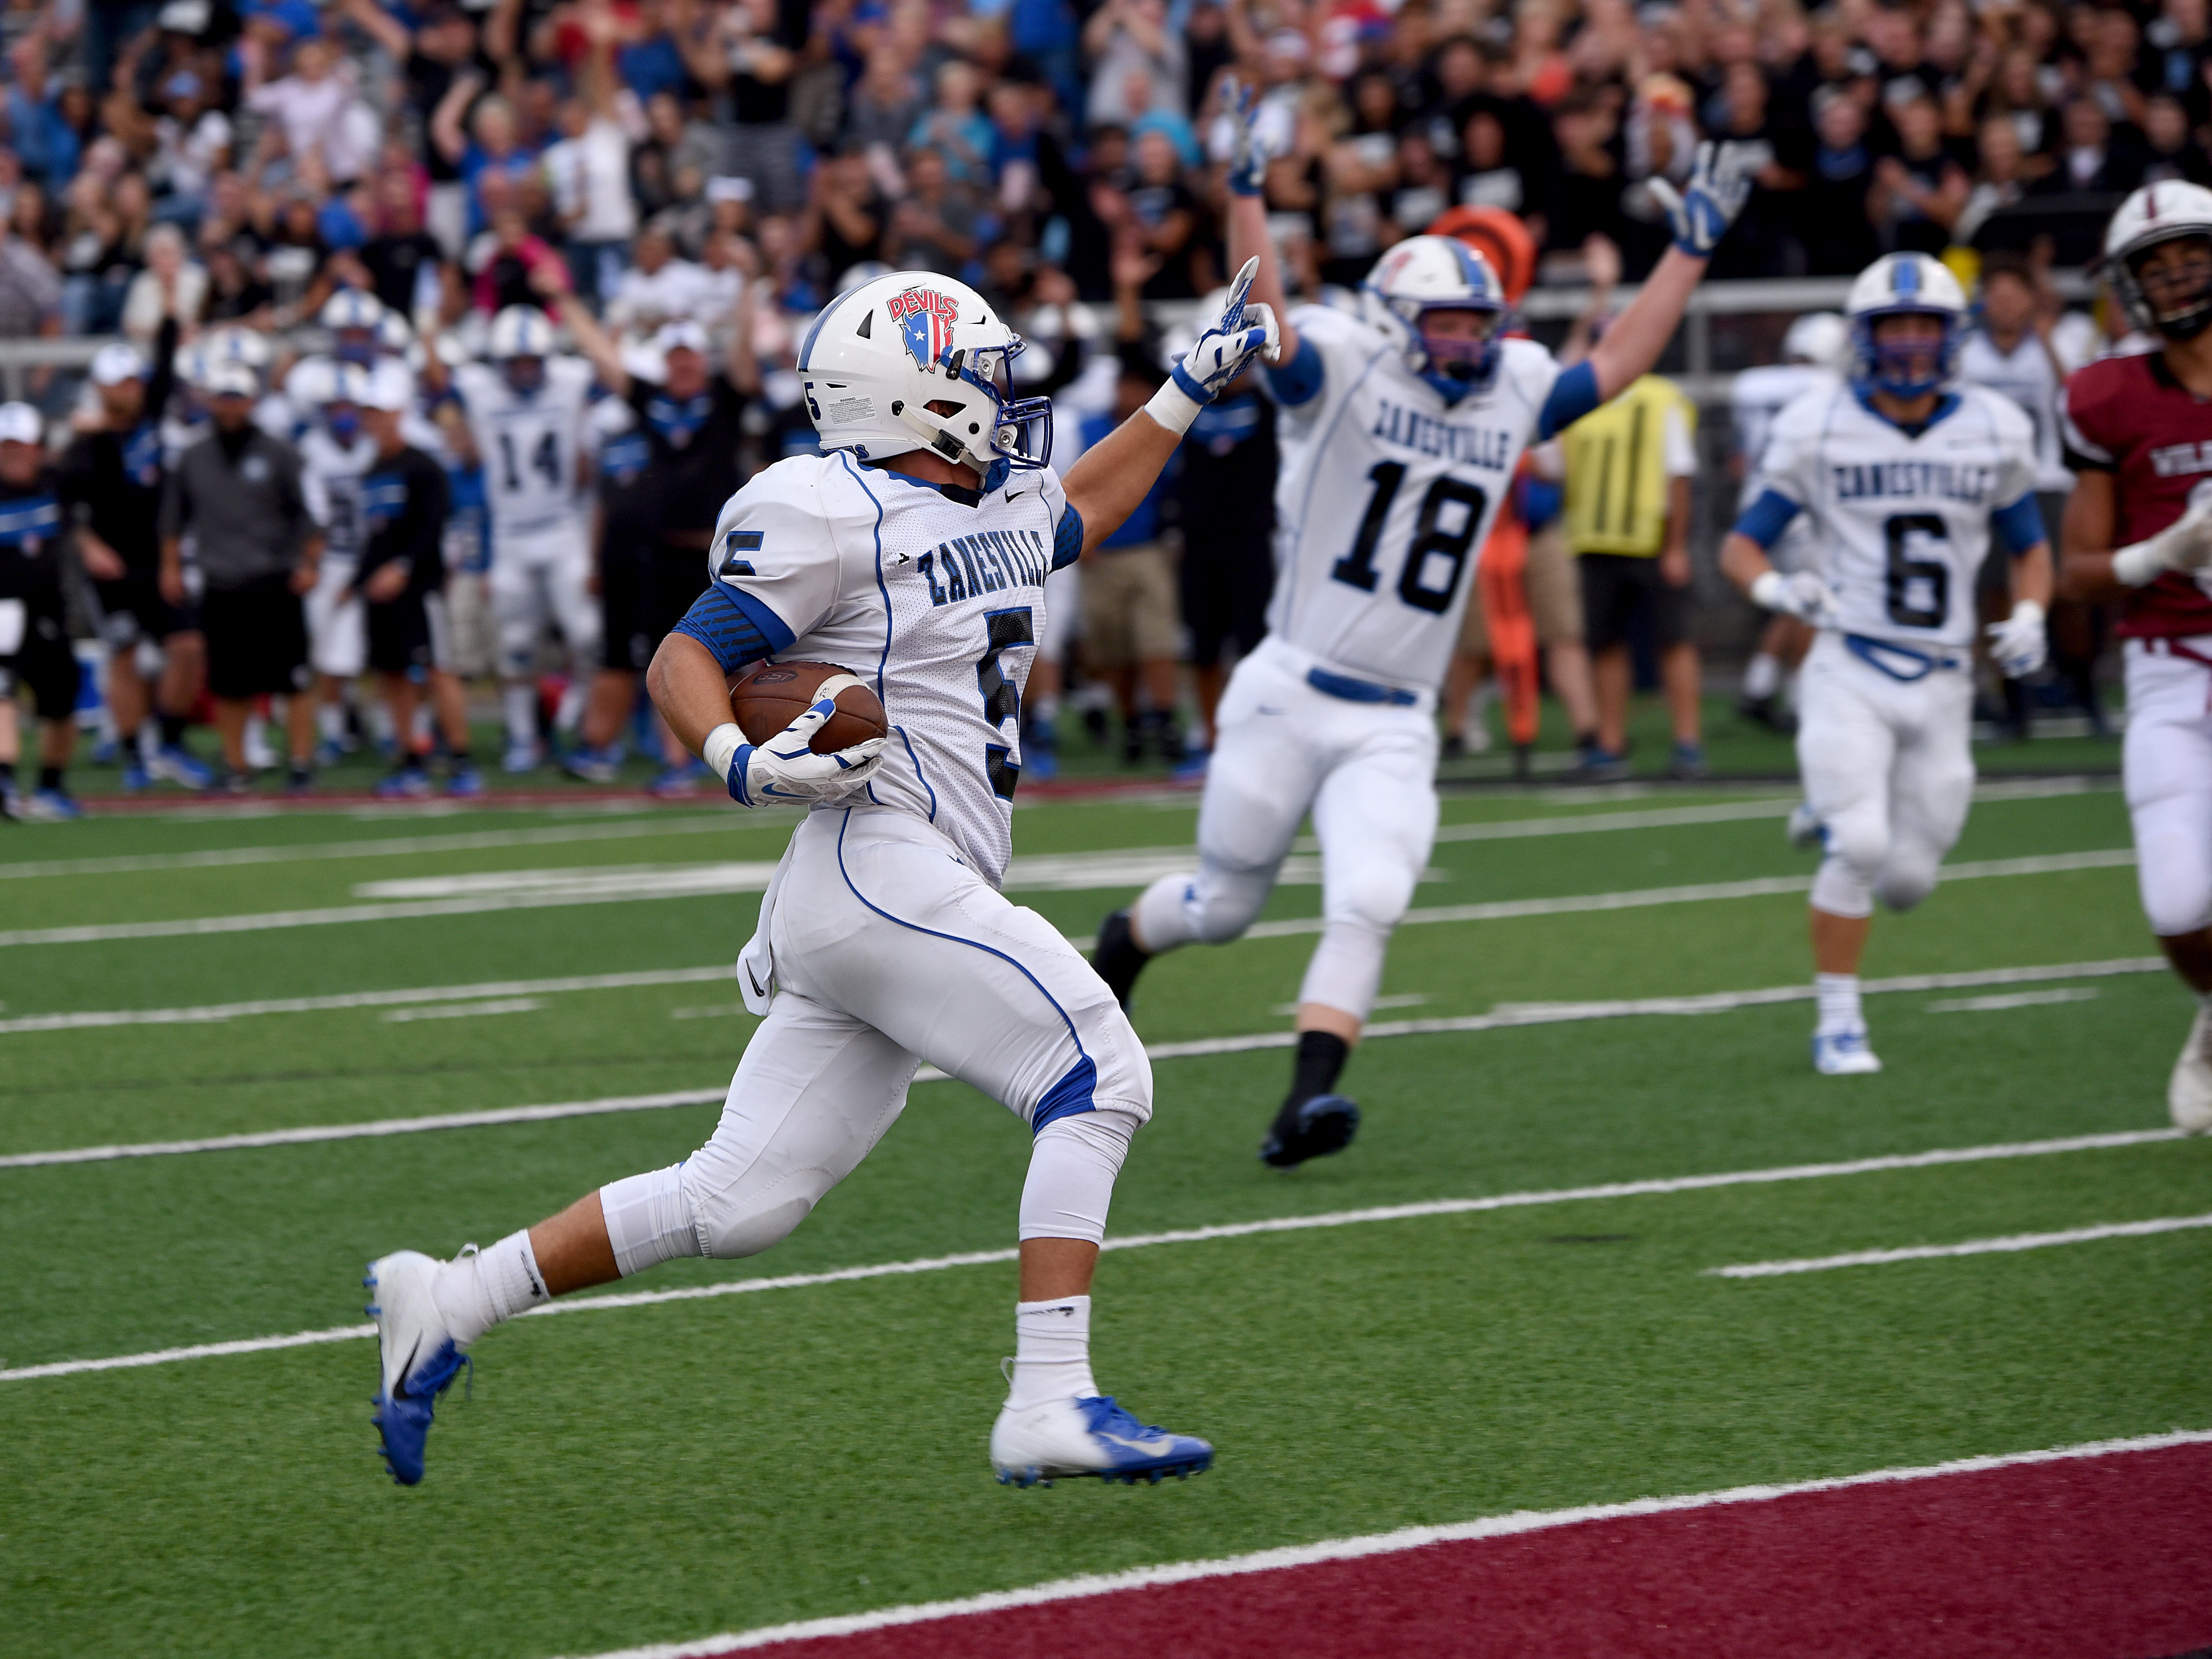 Zanesville senior running back J.C. Curtis scores the first touchdown for the Blue Devils of the 2018 season on Friday, Aug. 24, 2018 at White Field in Newark. The Blue Devils defeated the Wildcats 32-27.